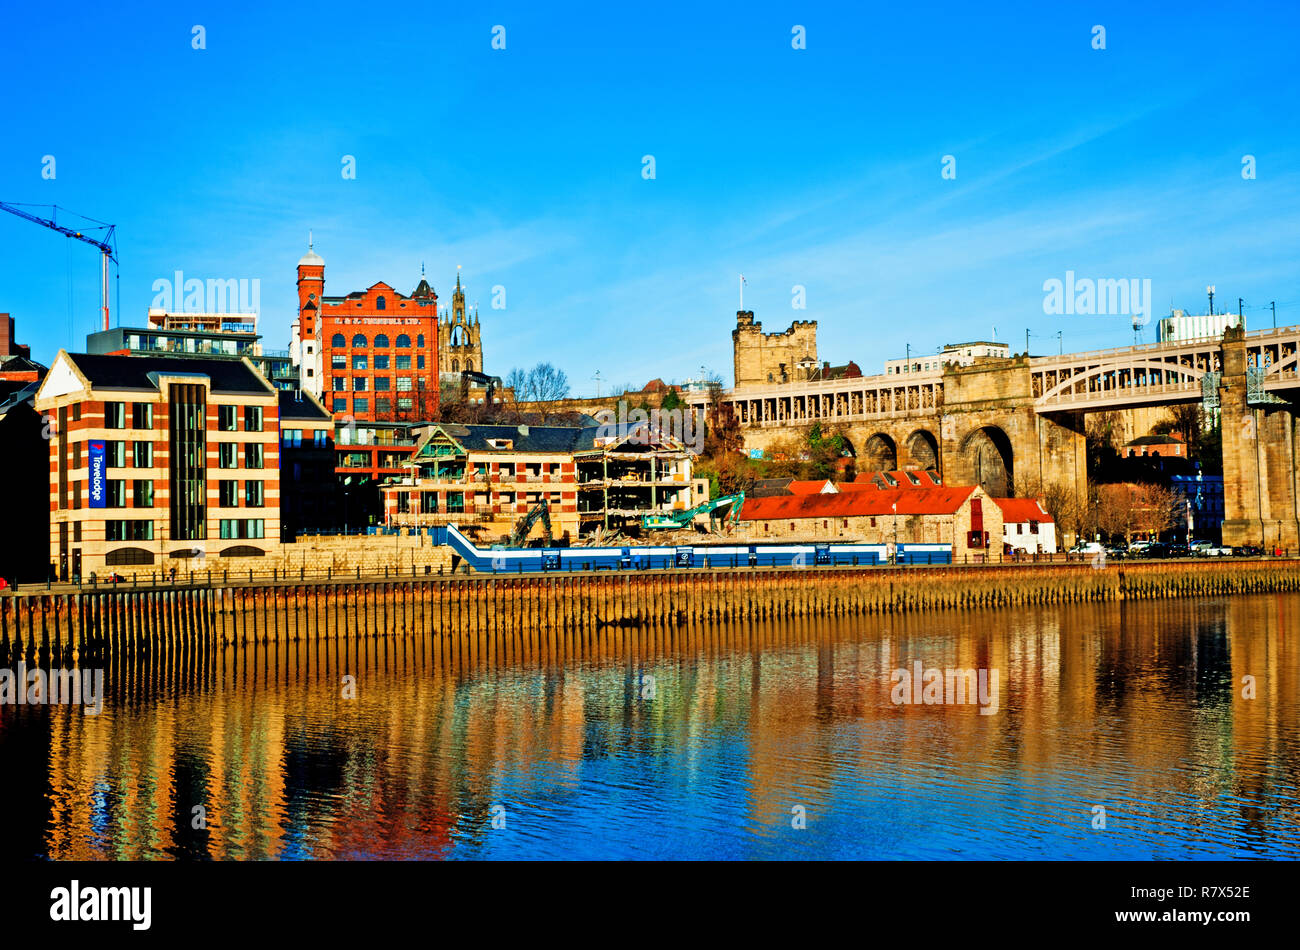 Travelodge and construction work on Quayside, Newcastle on Tyne, England Stock Photo